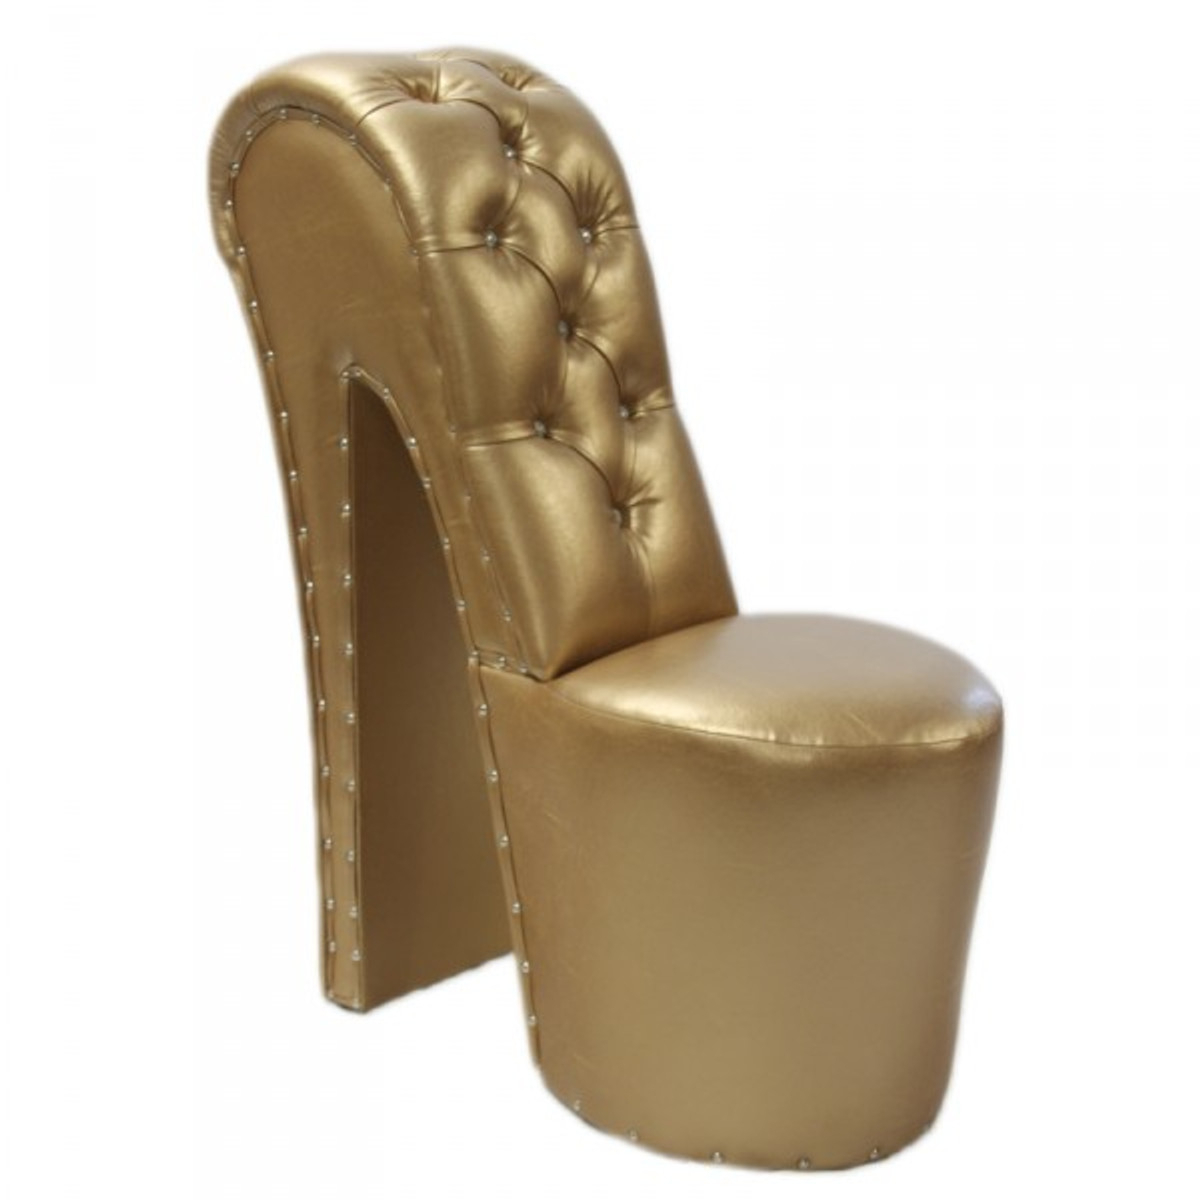 Modern And Very Elegant High Heel Chair With Decorative With Regard To Heel Chair Sofas (View 11 of 15)